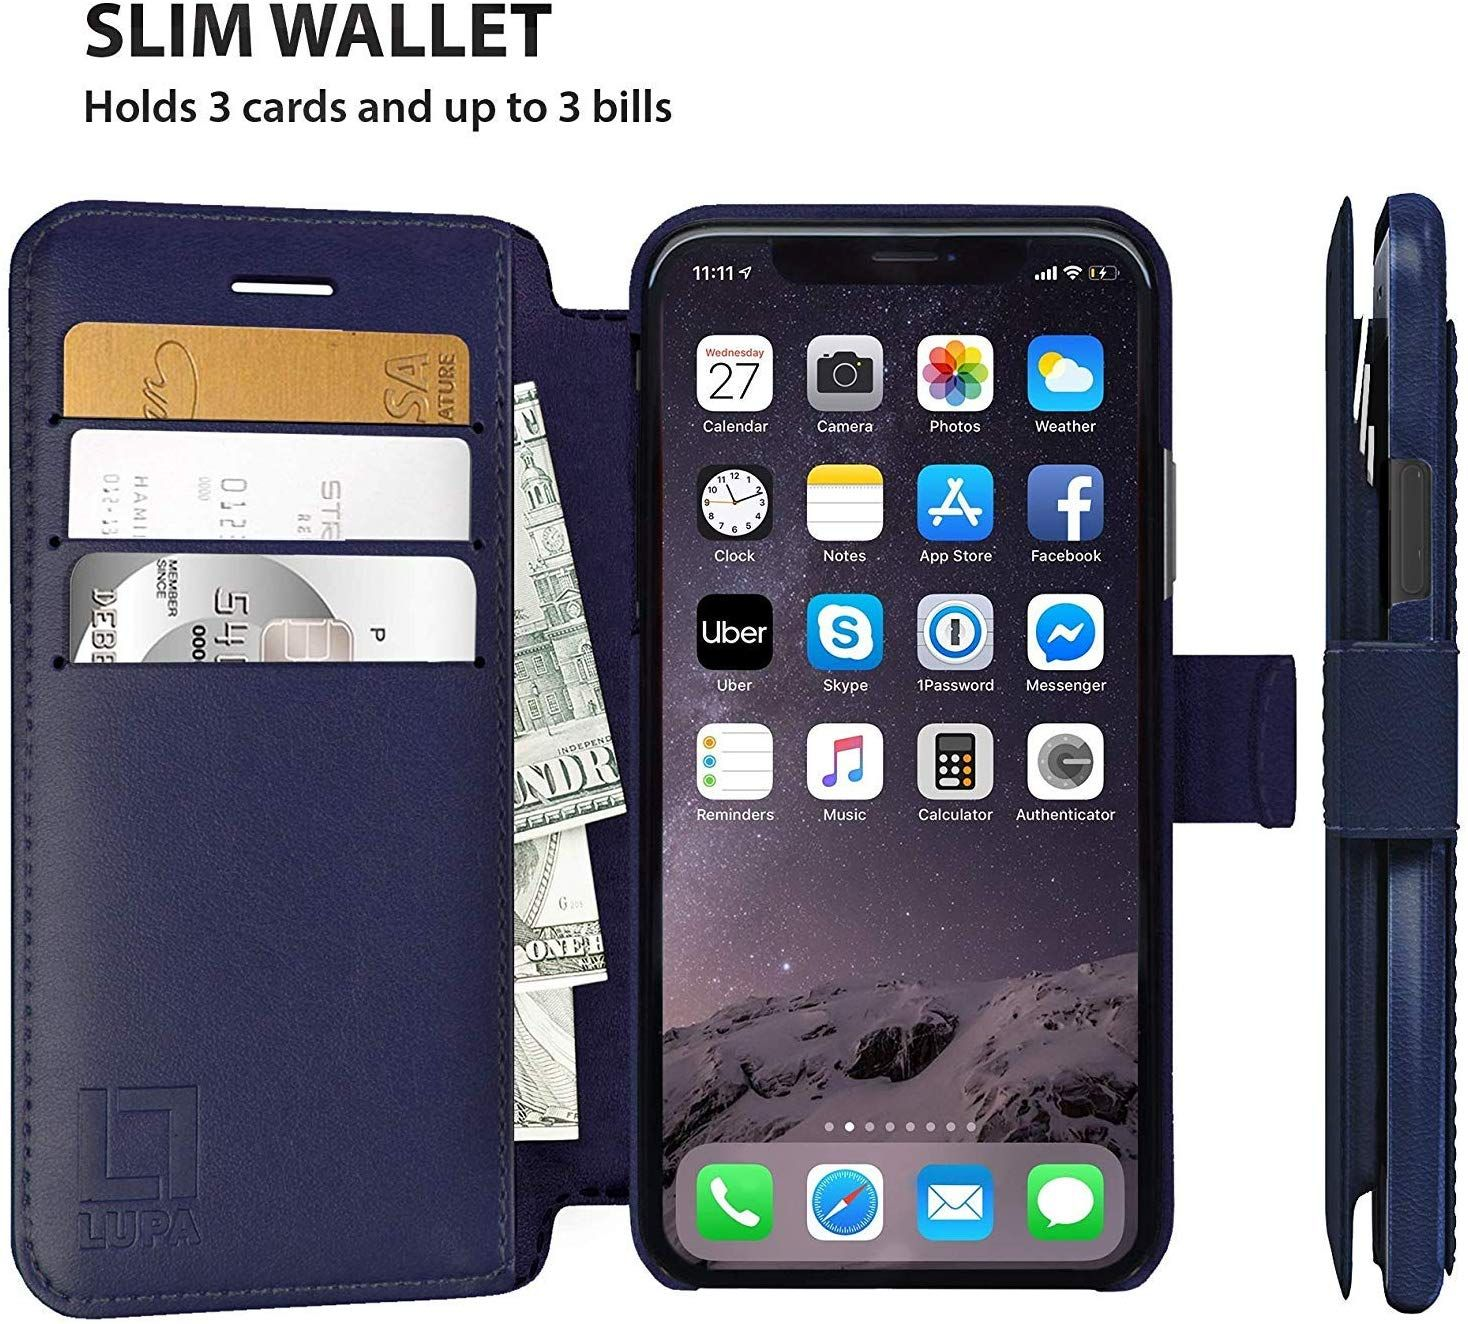 Lupa iphone xr wallet case durable and slim